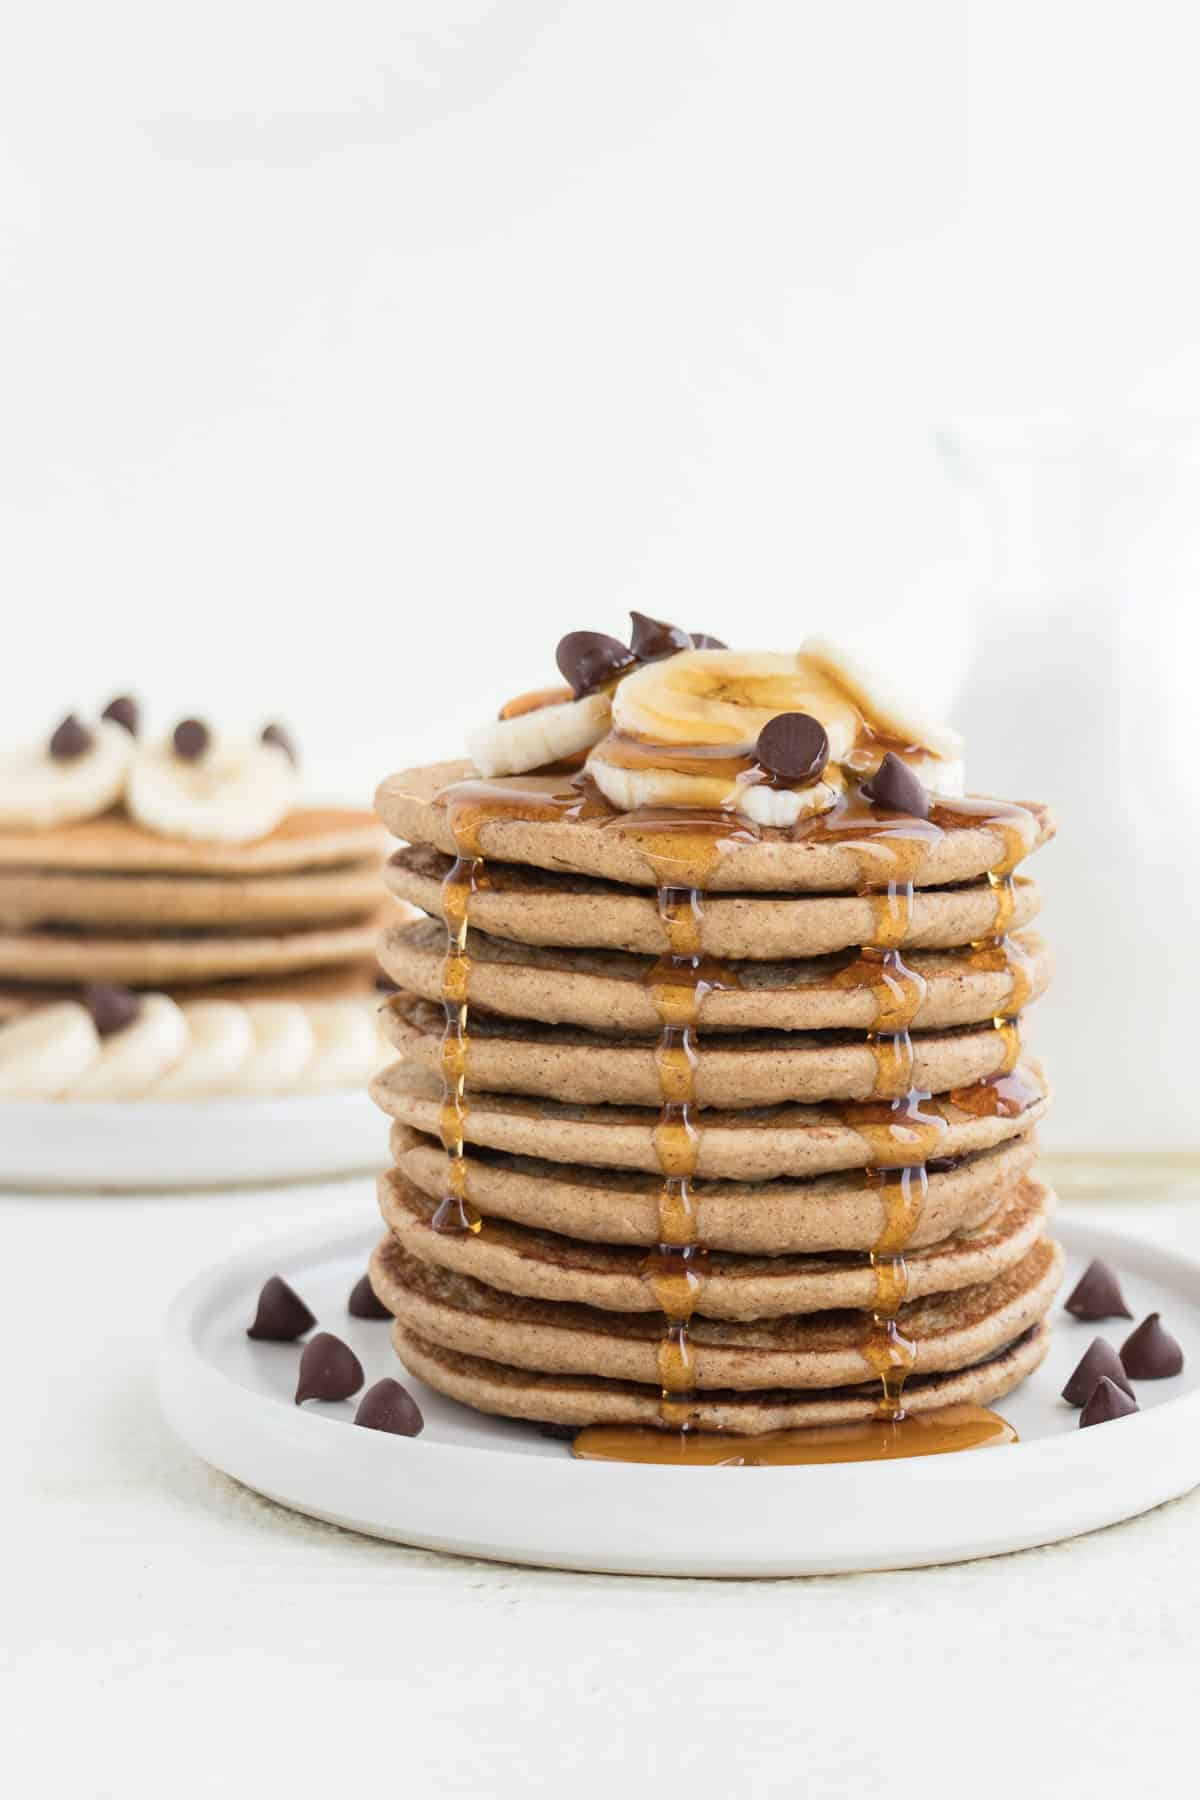 banana pancakes stacked with maple syrup, sliced banana, and chocolate chips